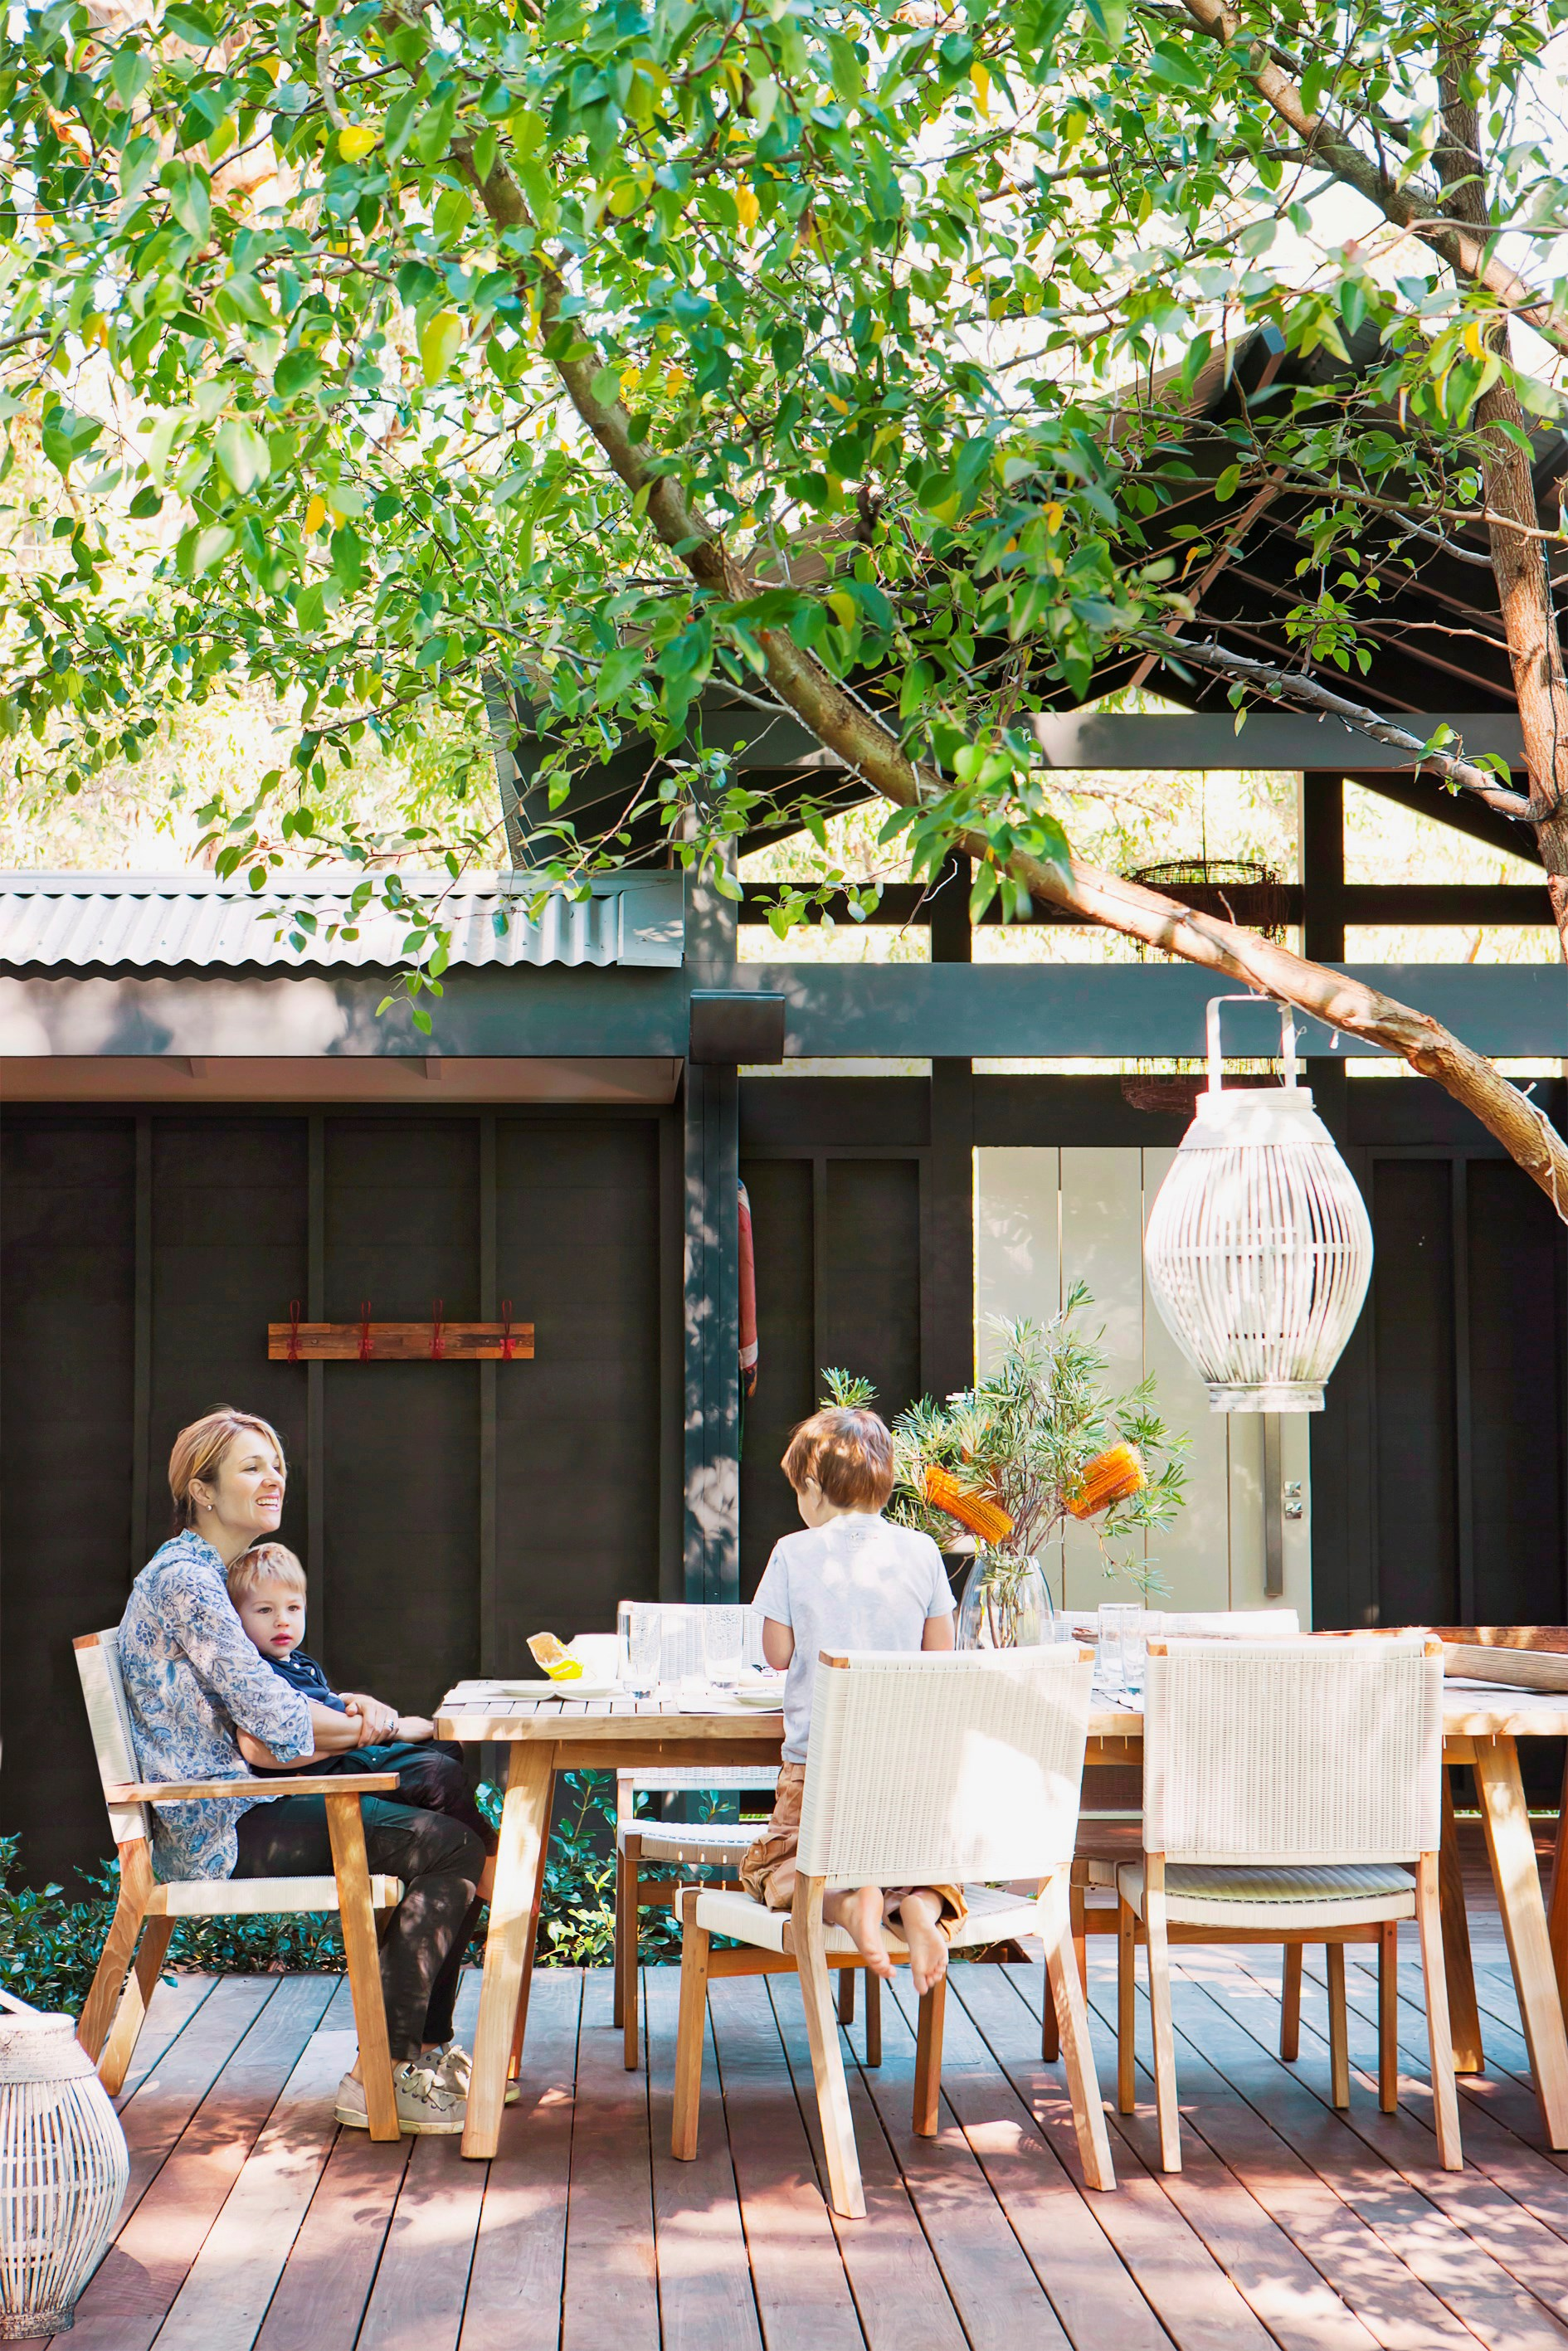 "[> Get five tips for the ultimate outdoor entertaining area.](http://www.homestolove.com.au/5-tips-for-the-ultimate-outdoor-entertaining-area-3565|target=""_blank"") *Photo: Maree Homer / bauersyndication.com.au*"